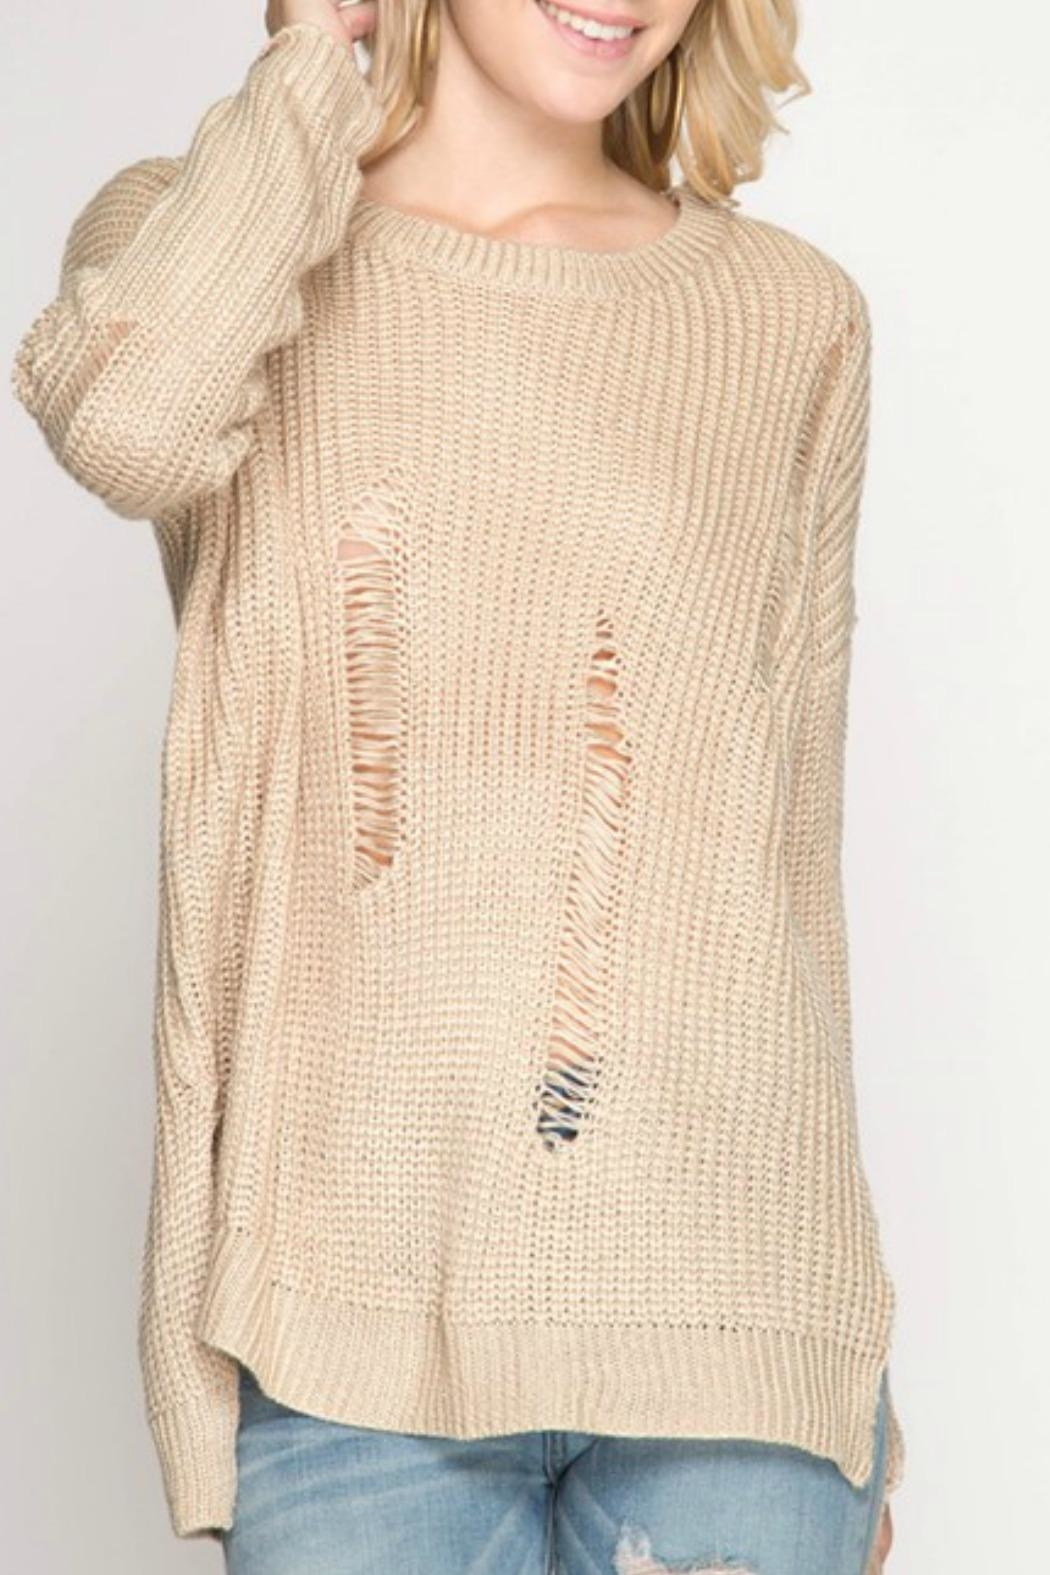 She + Sky Distressed Open-Back Sweater - Main Image